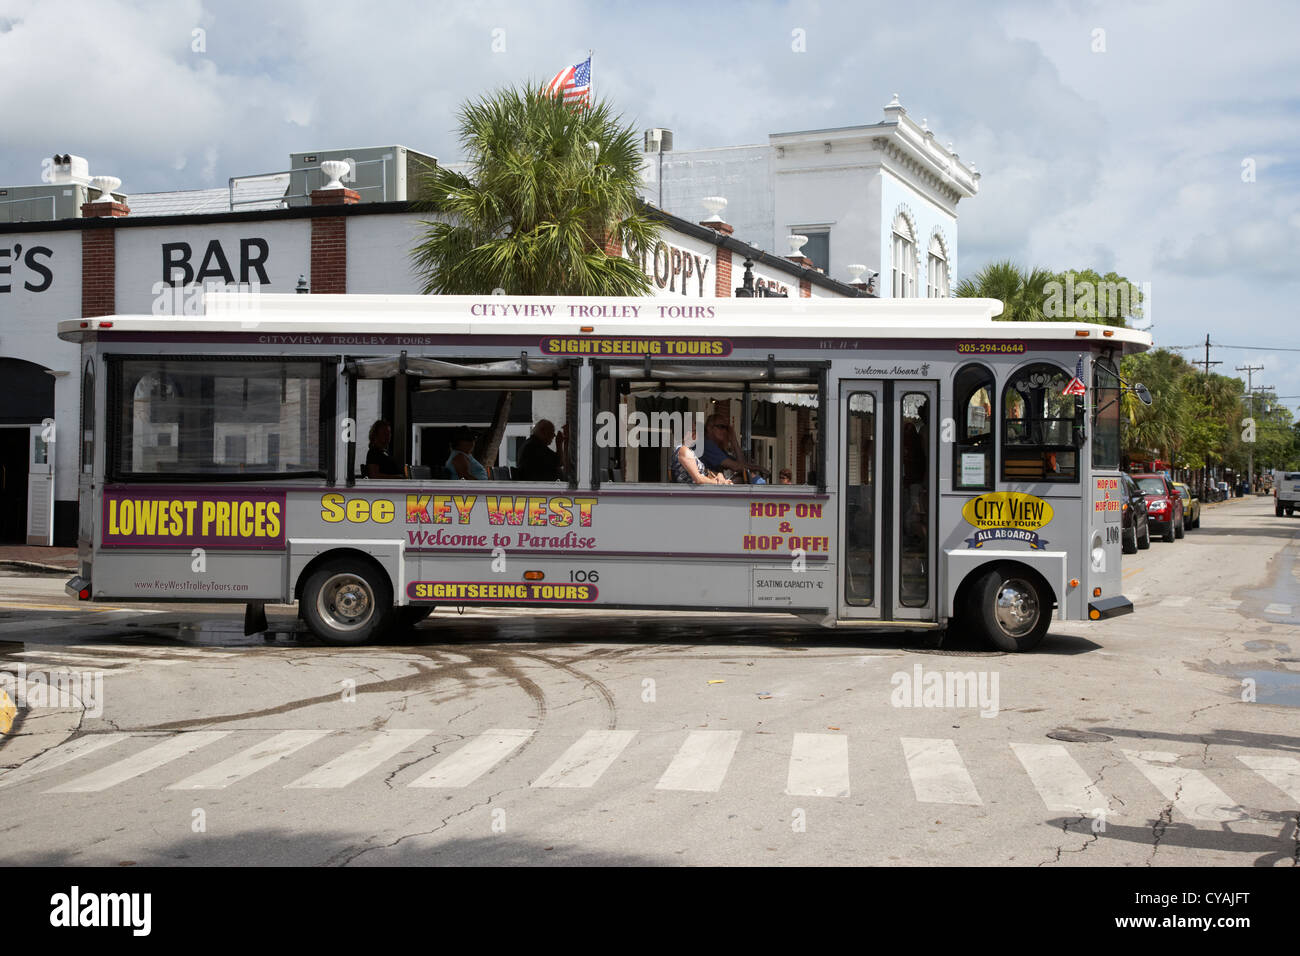 key west trolley tours sightseeing tours florida usa - Stock Image